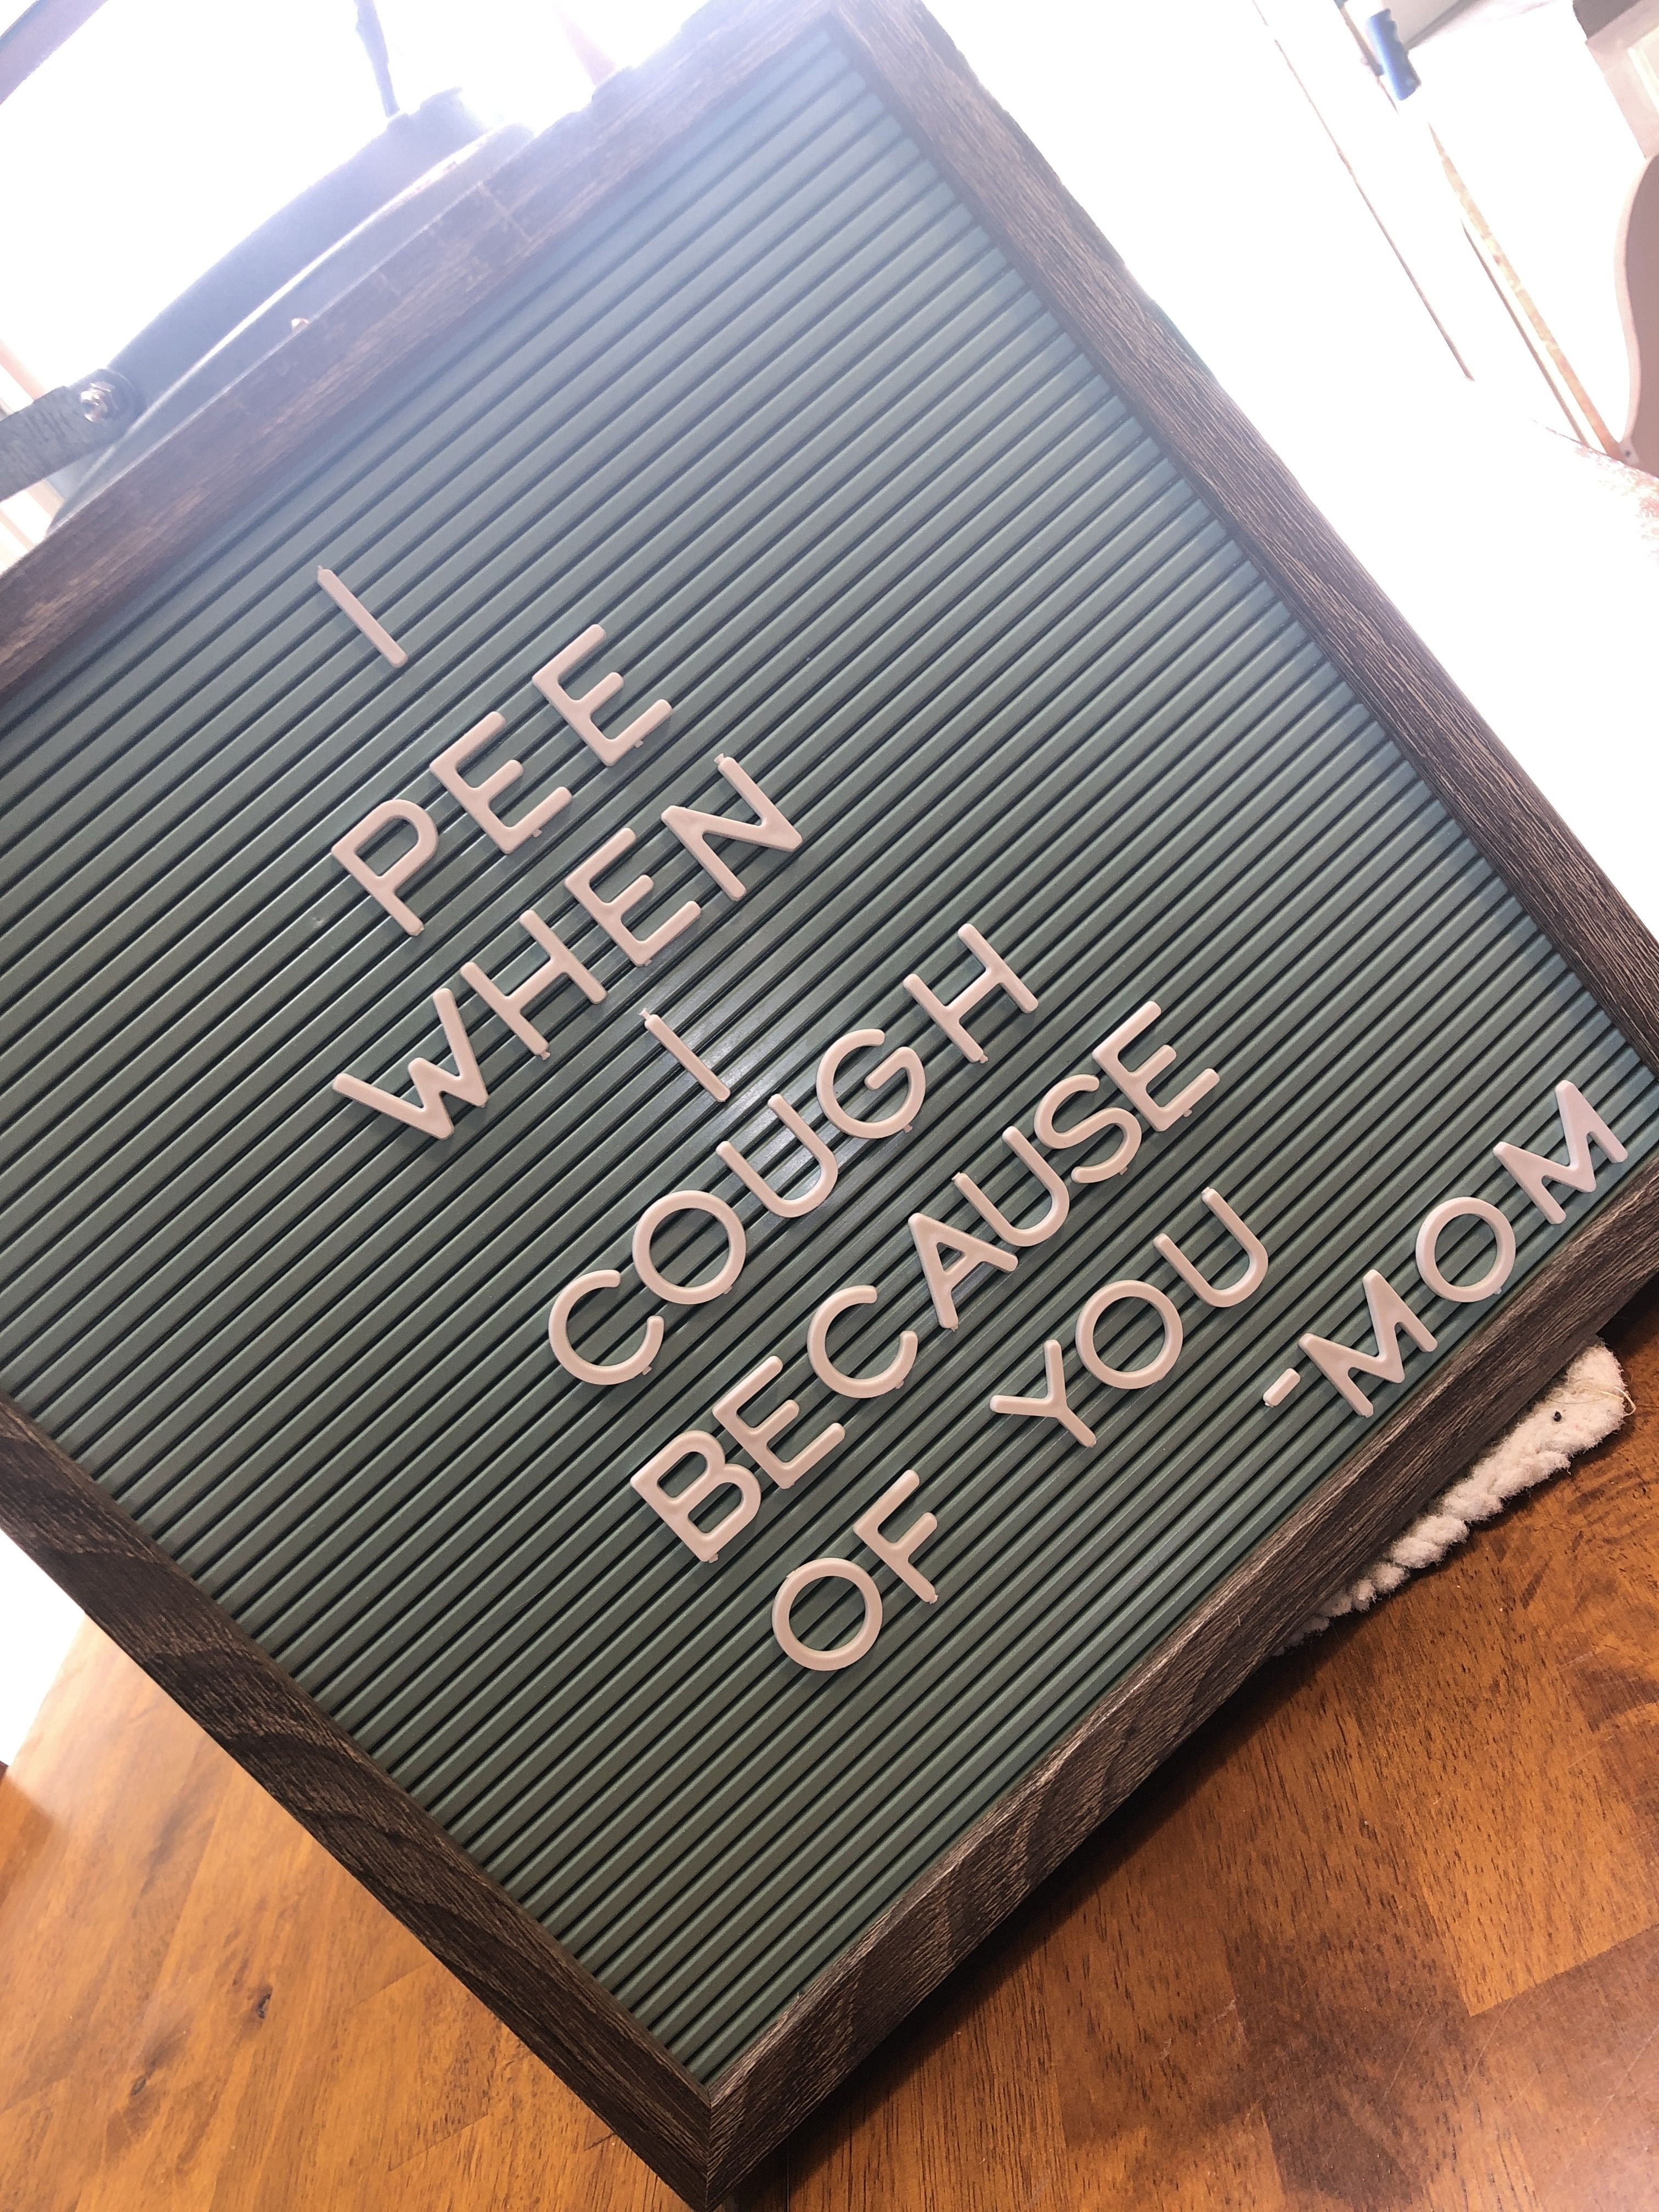 48+ Baby letter board sayings trends